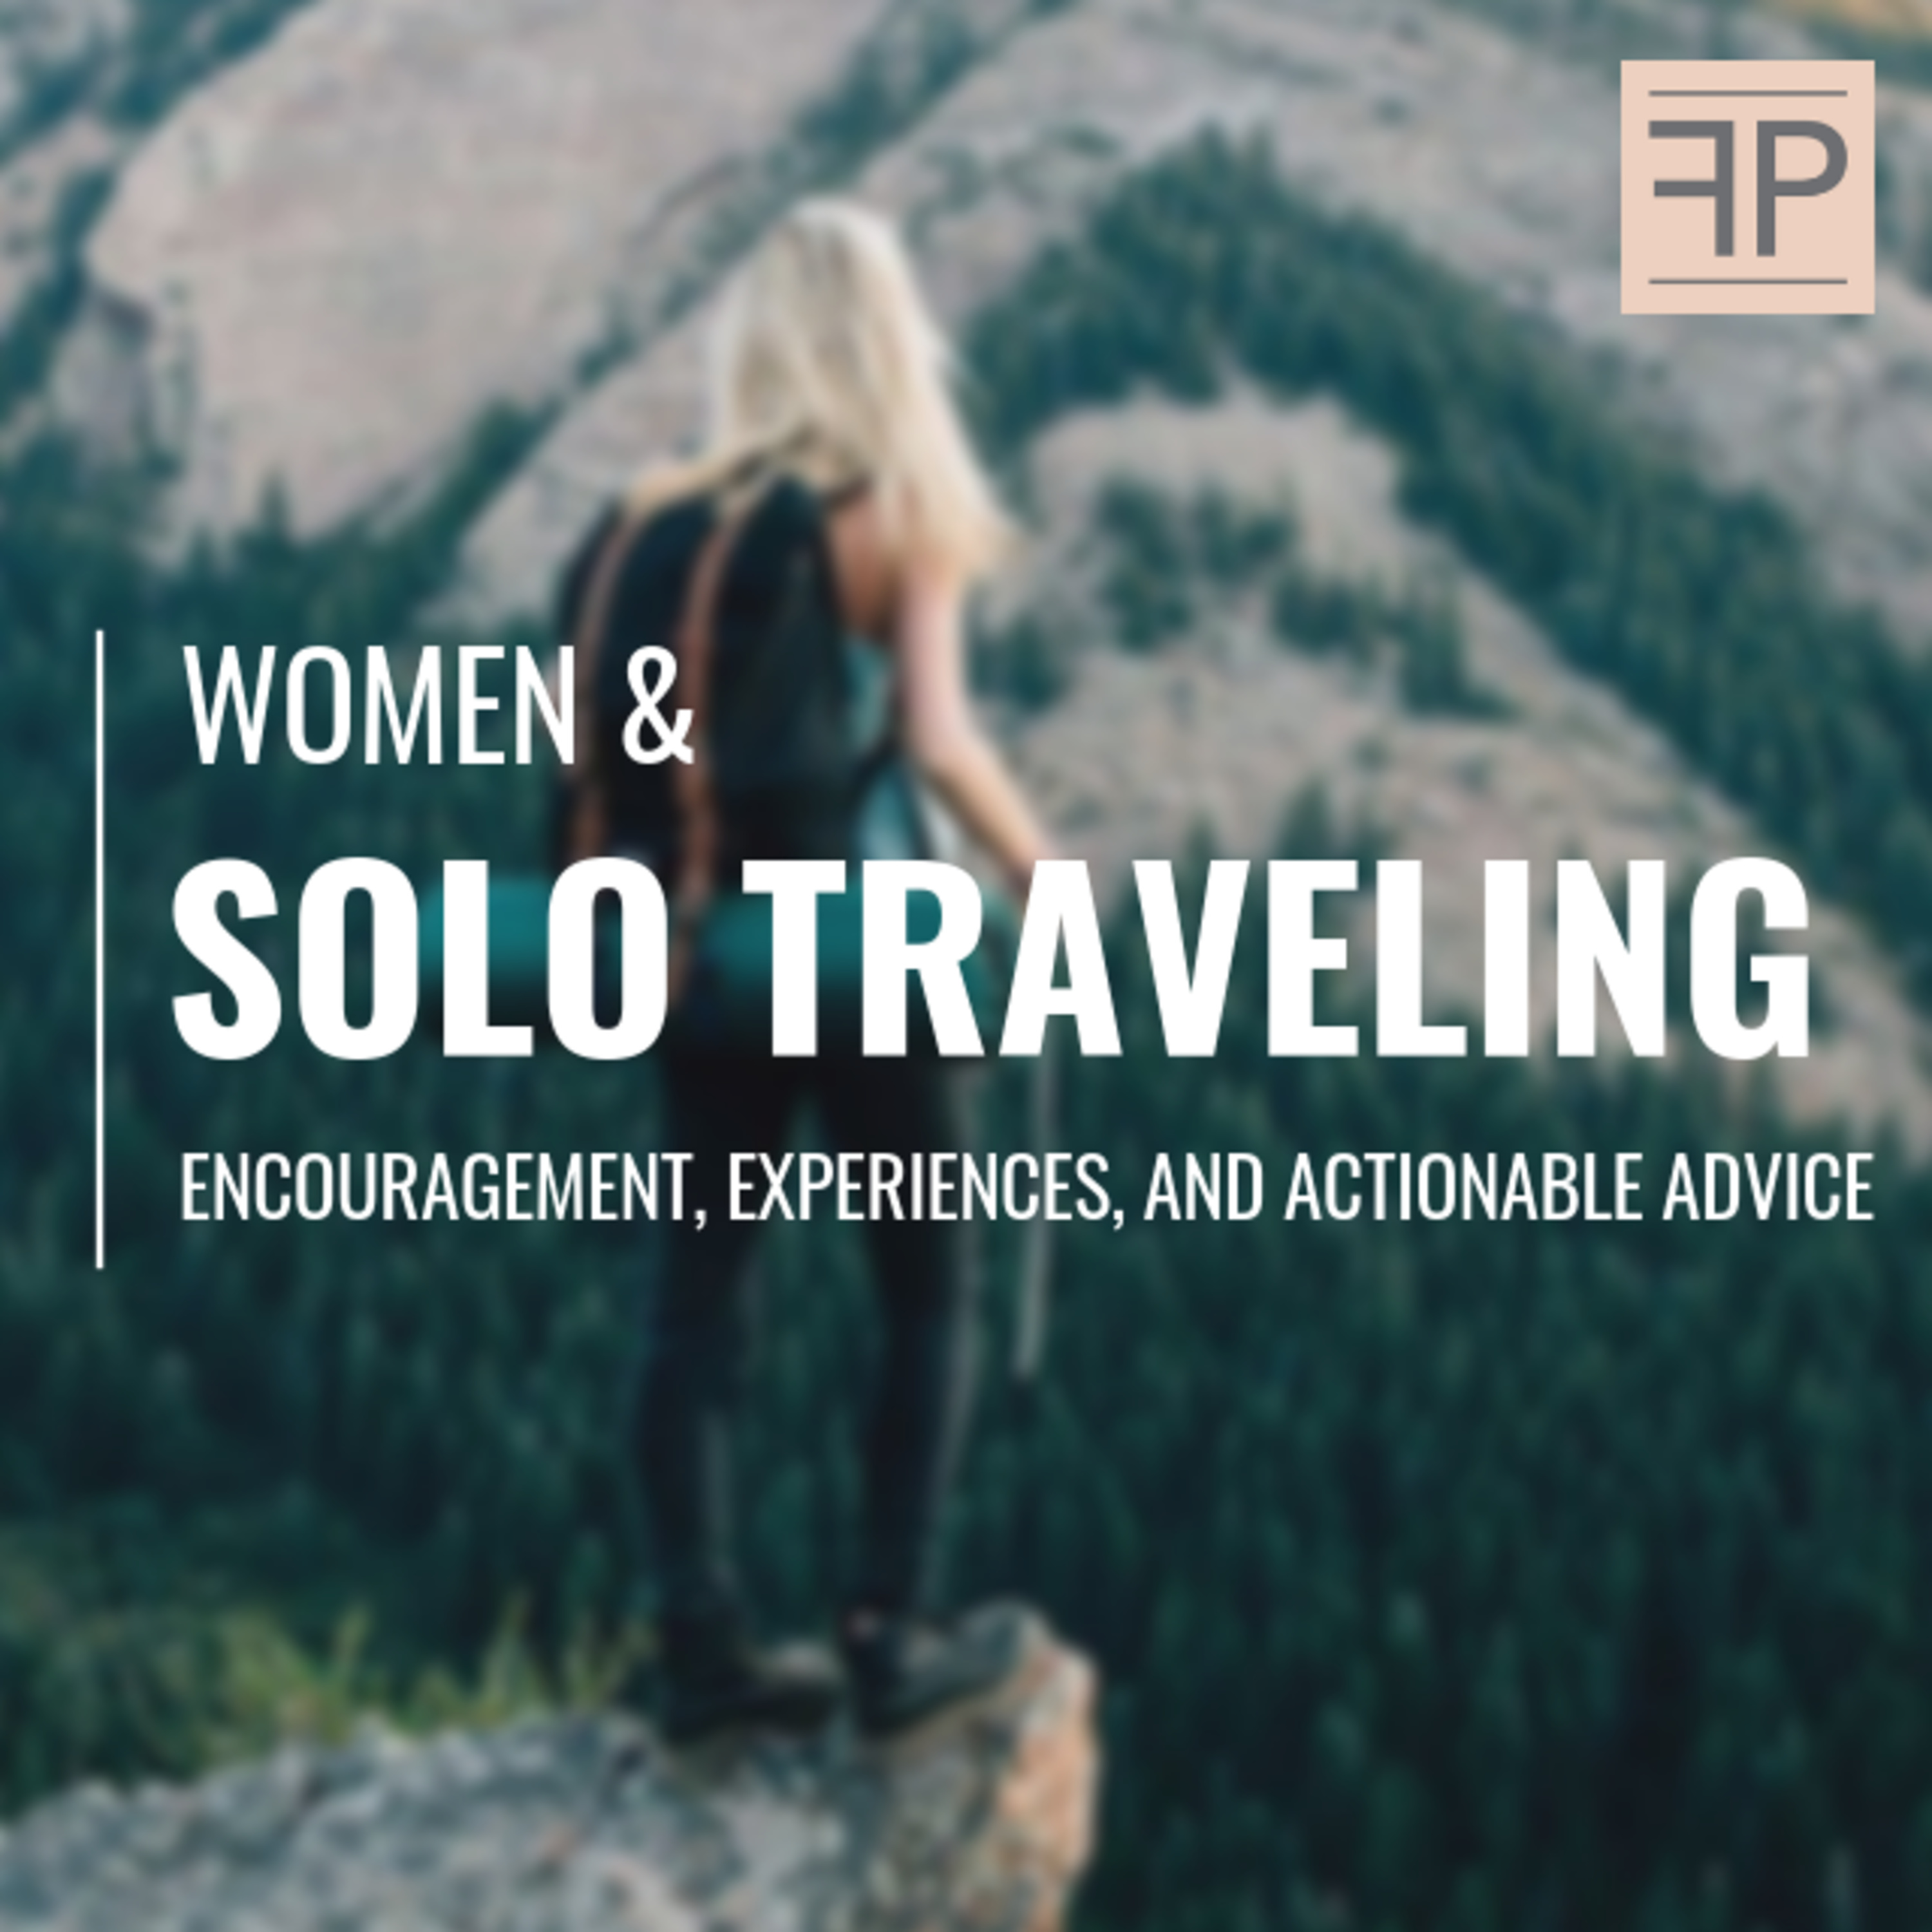 Solo Traveling for Women: Encouragement, Experiences, and Actionable Advice